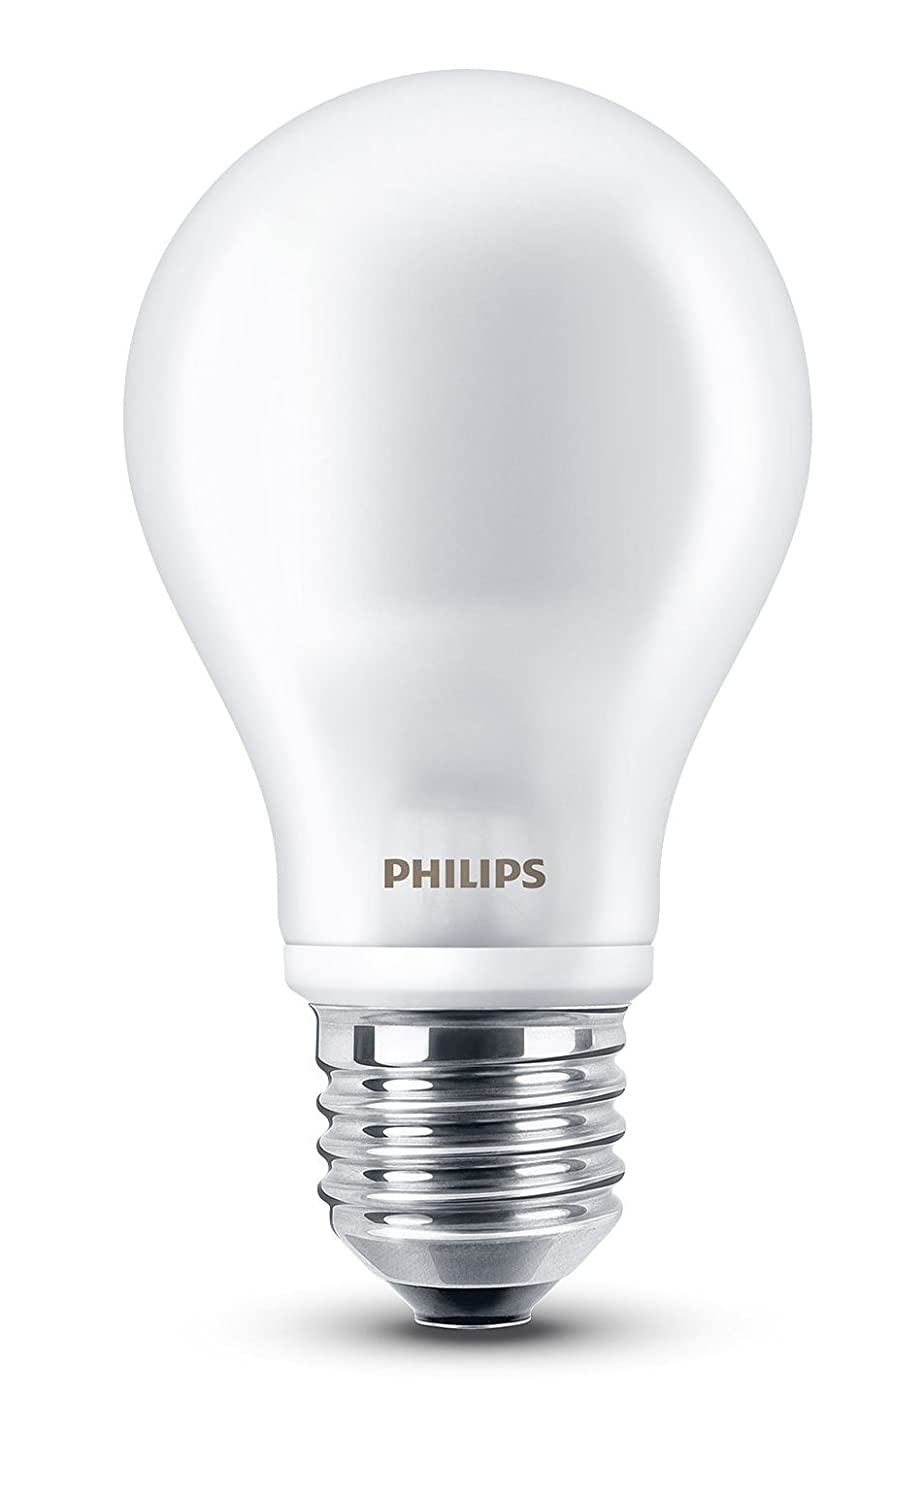 Philips LED, Bombilla LED estandar mate, 7W (60 W), casquillo gordo E27, Blanco cálido: Amazon.es: Industria, empresas y ciencia